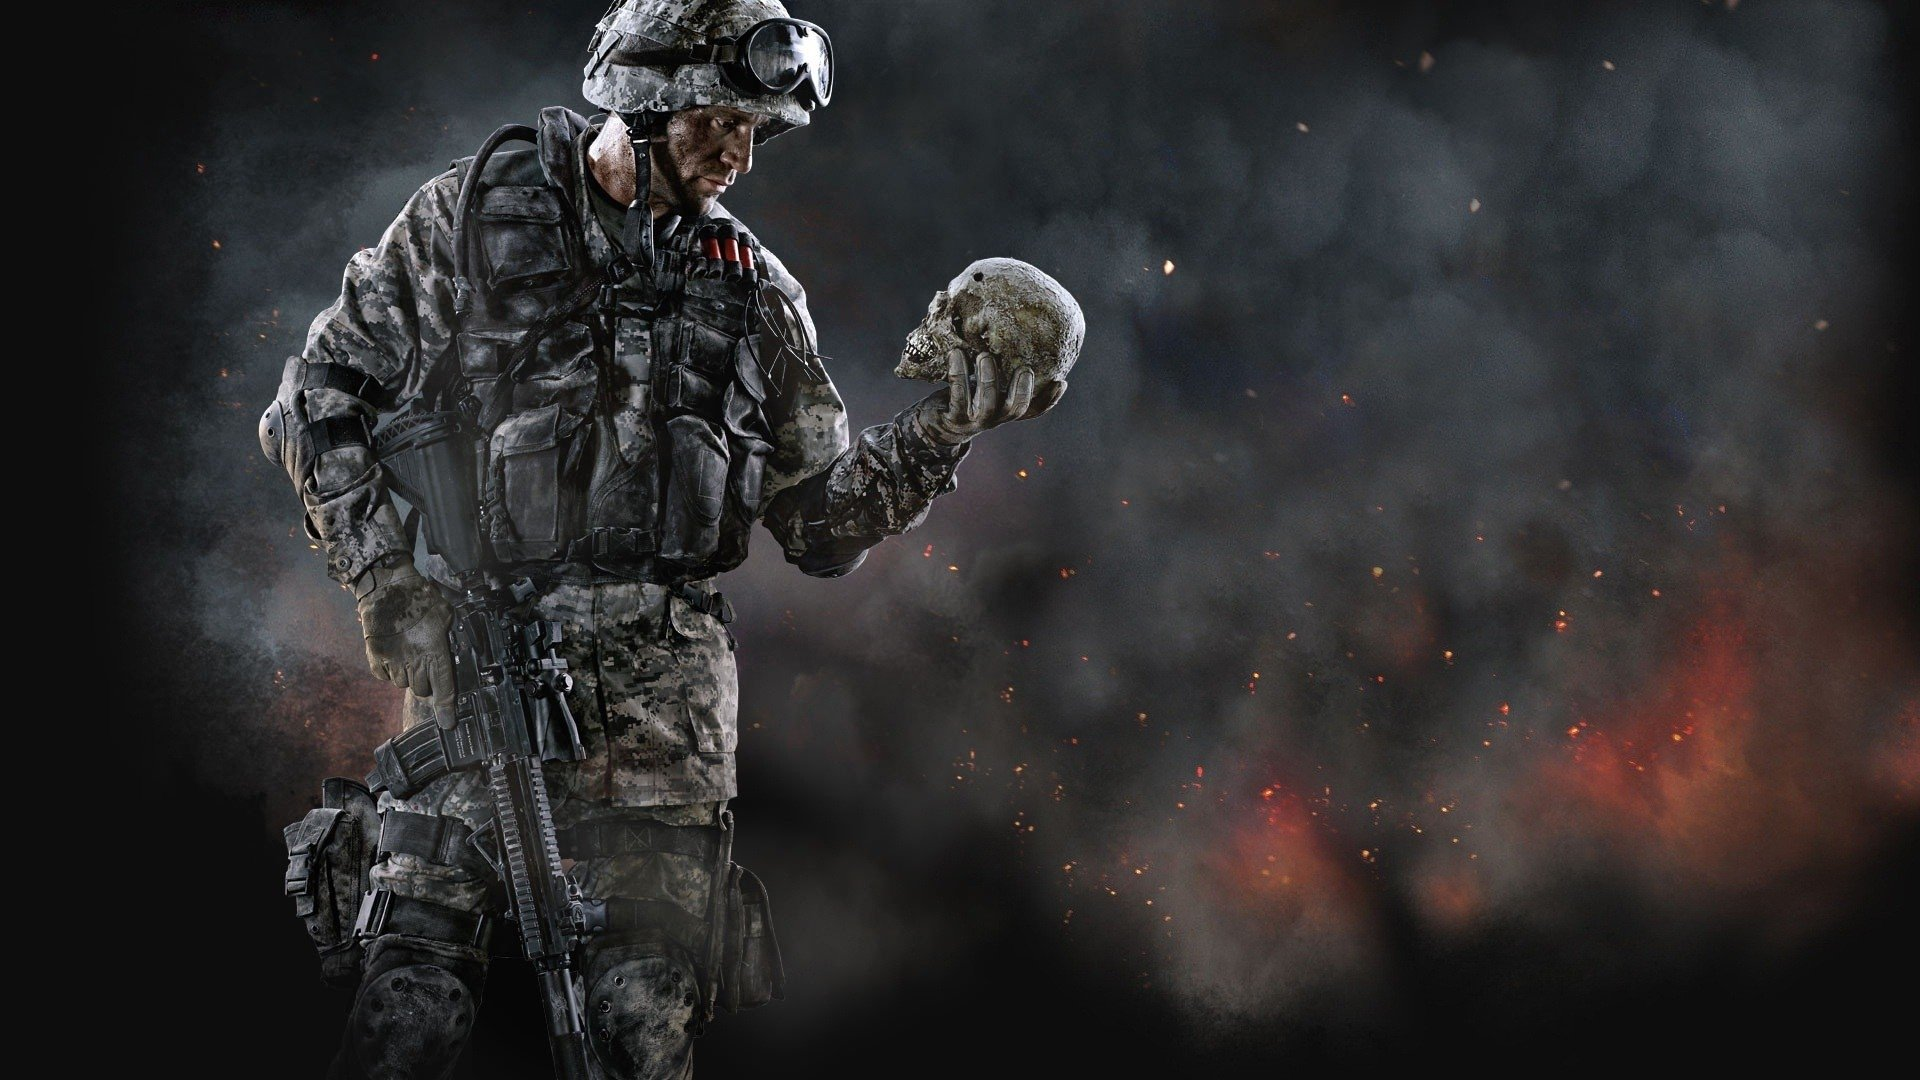 Cool Battlefield 4 Fire Armor In Black Background: Warface Full HD Fond D'écran And Arrière-Plan